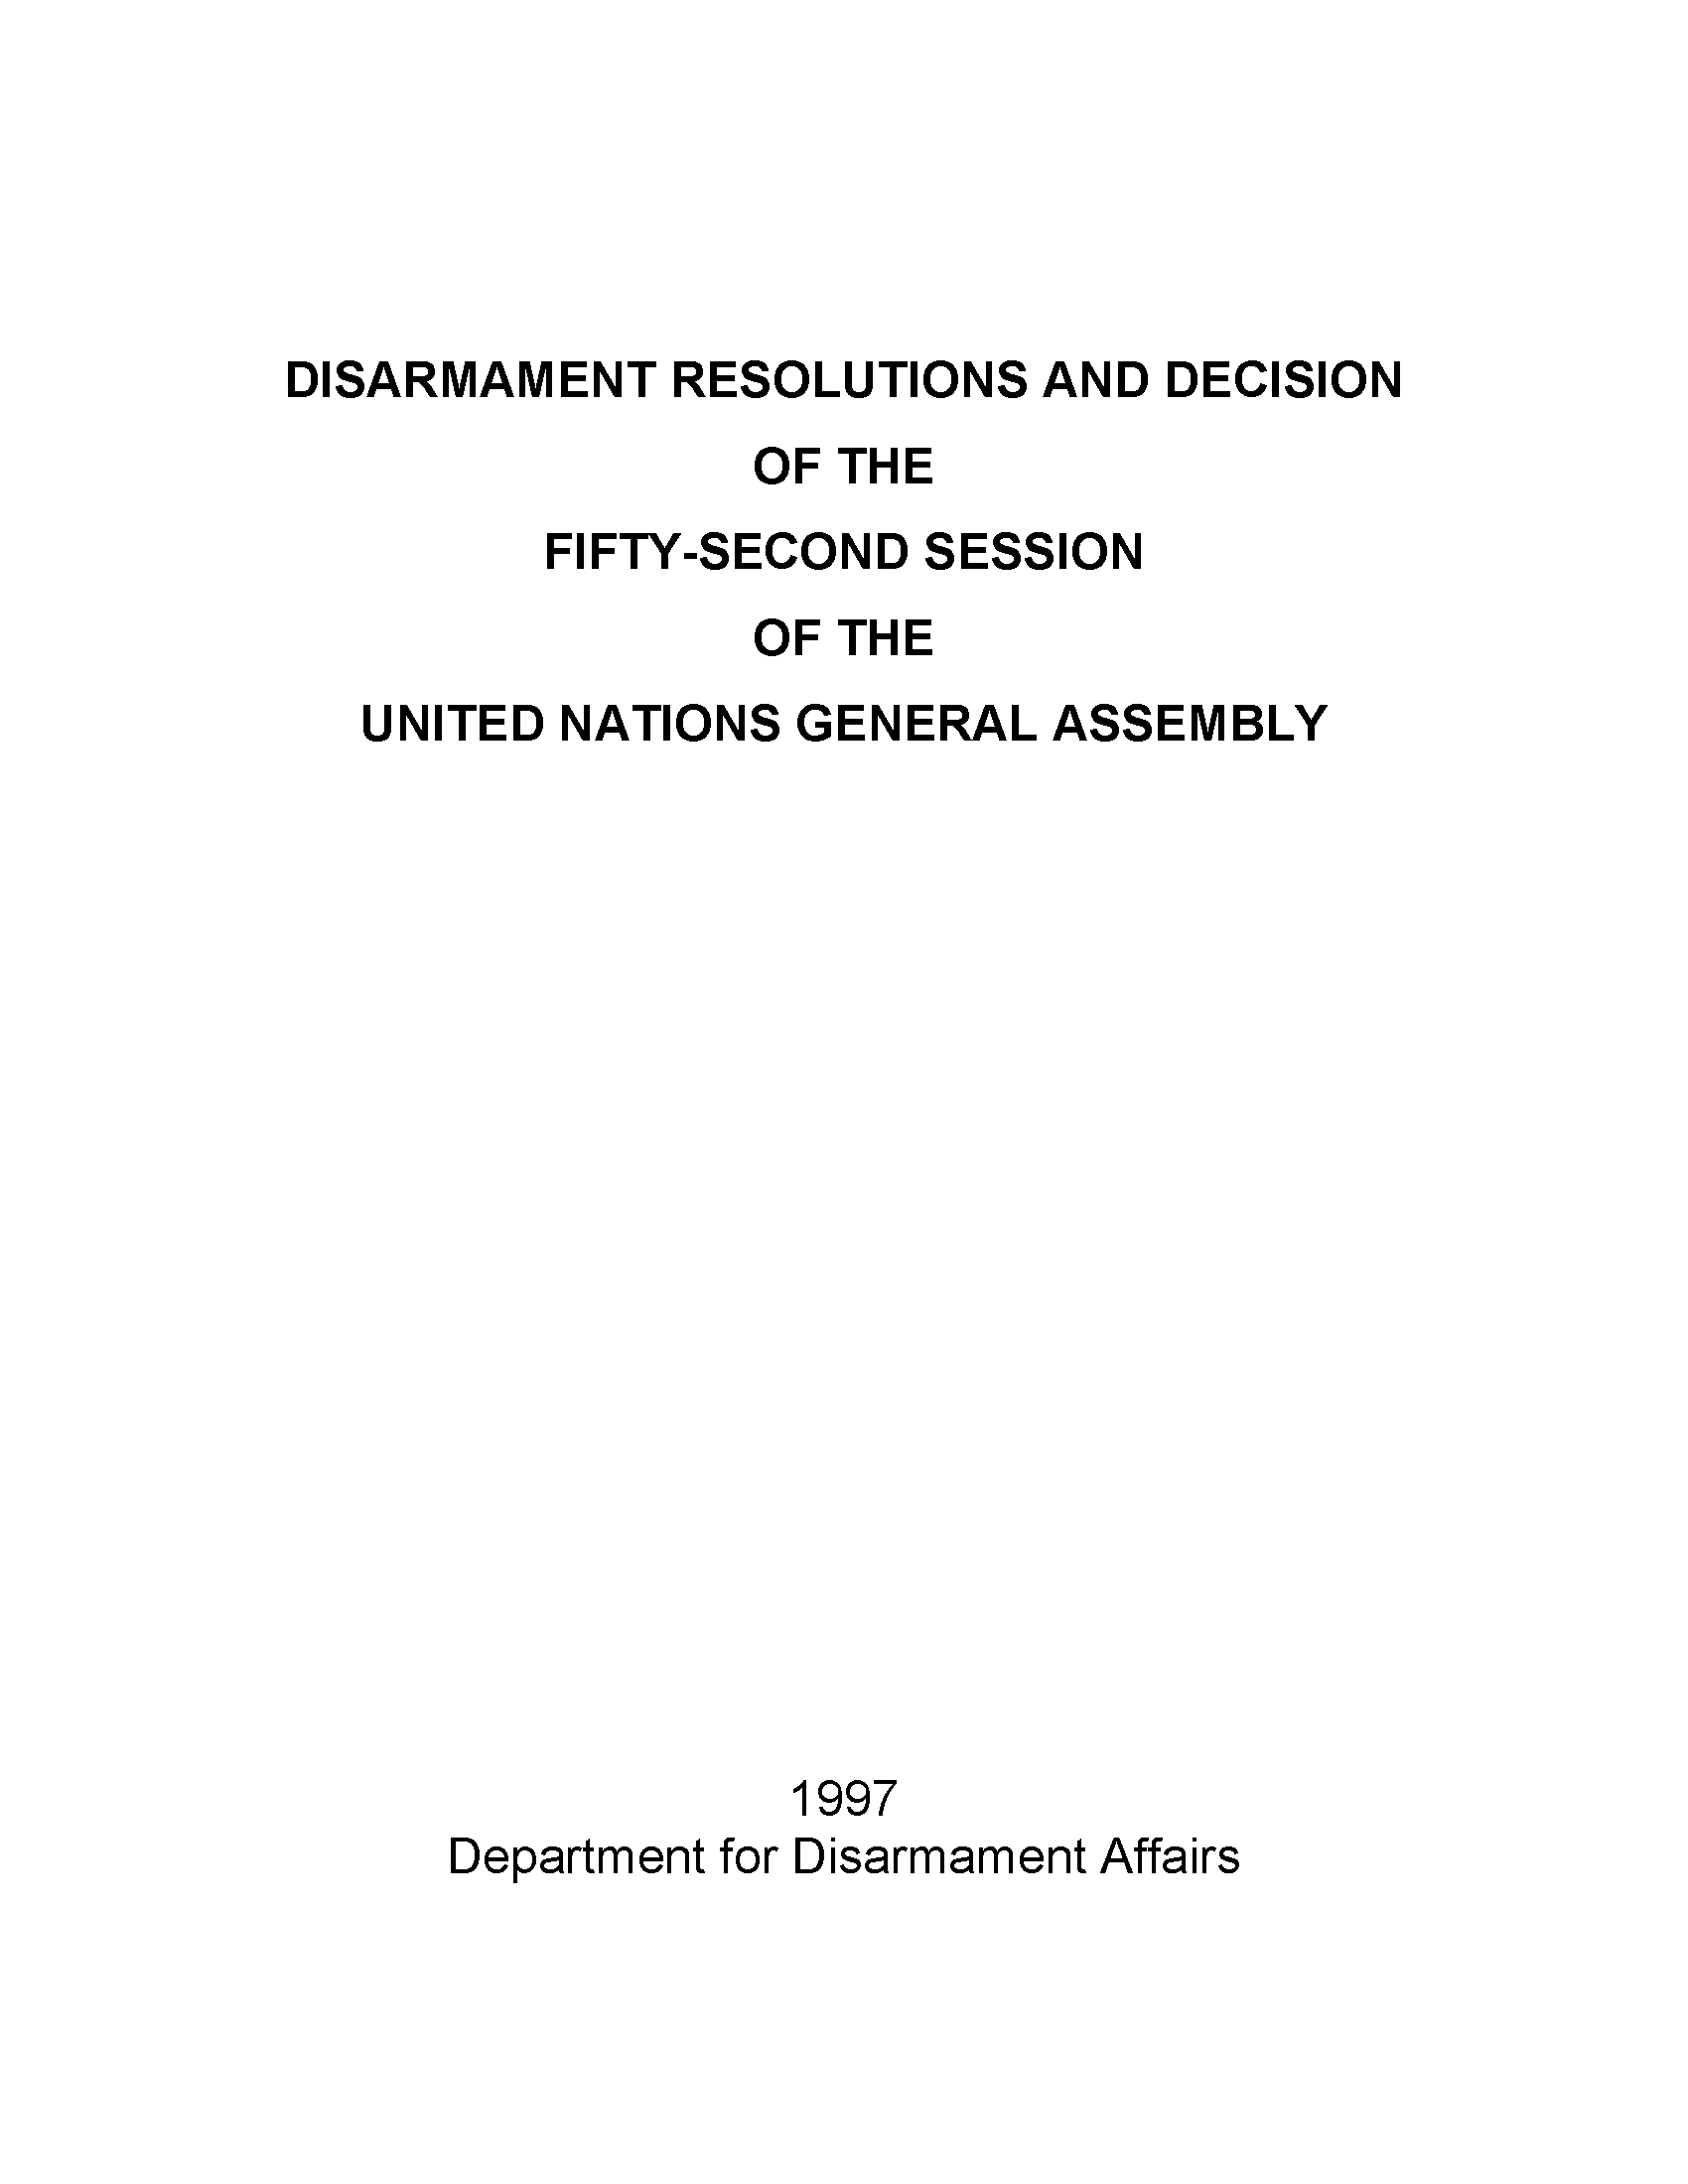 Disarmament Resolutions and Decisions of the Fifty-second Session of the United Nations General Assembly, 1997